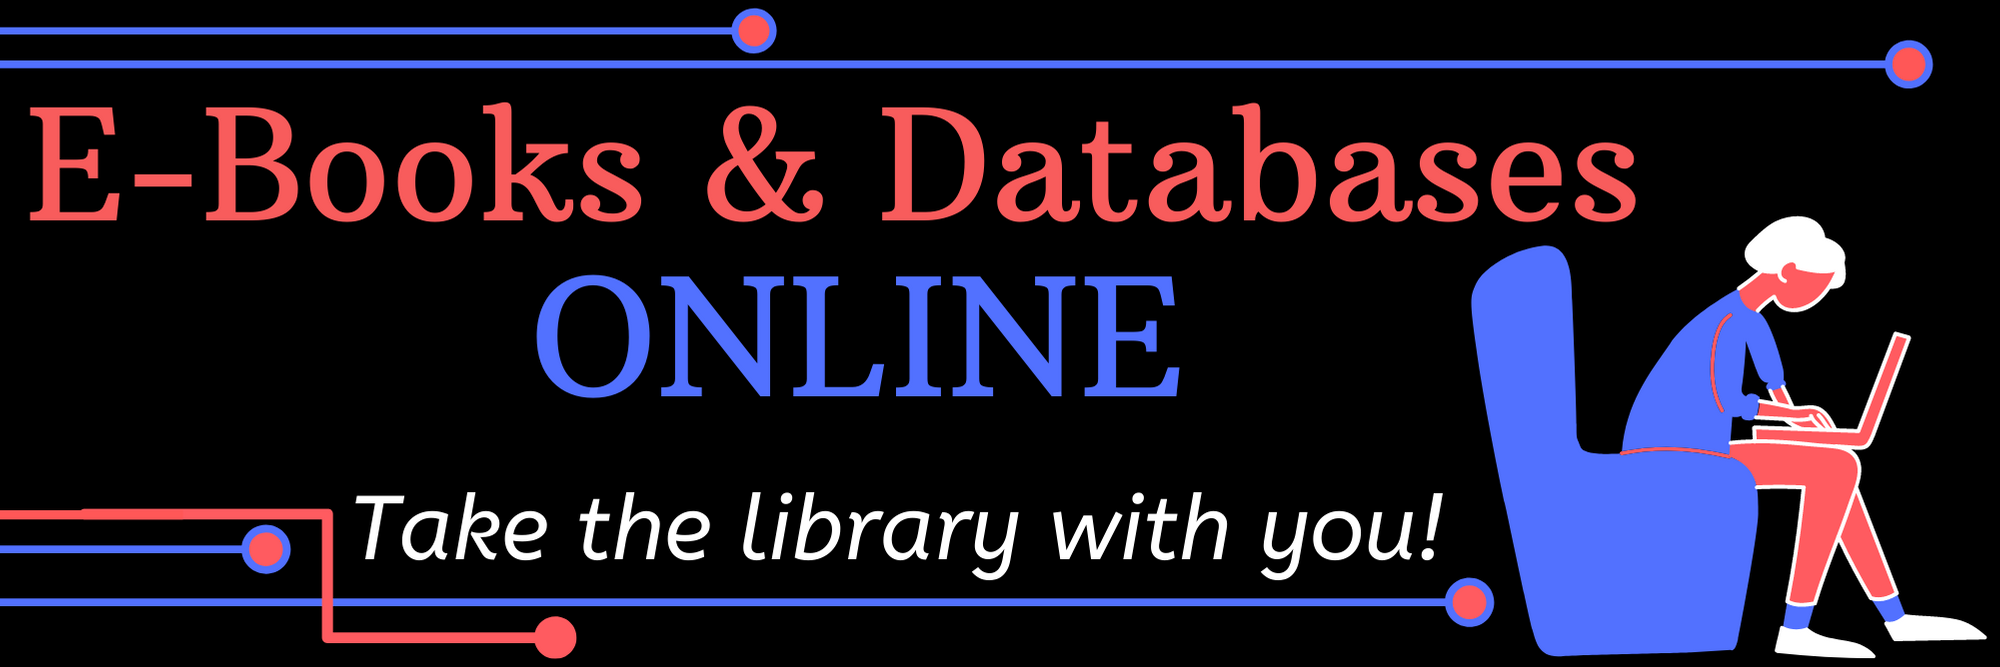 Databases and Ebooks